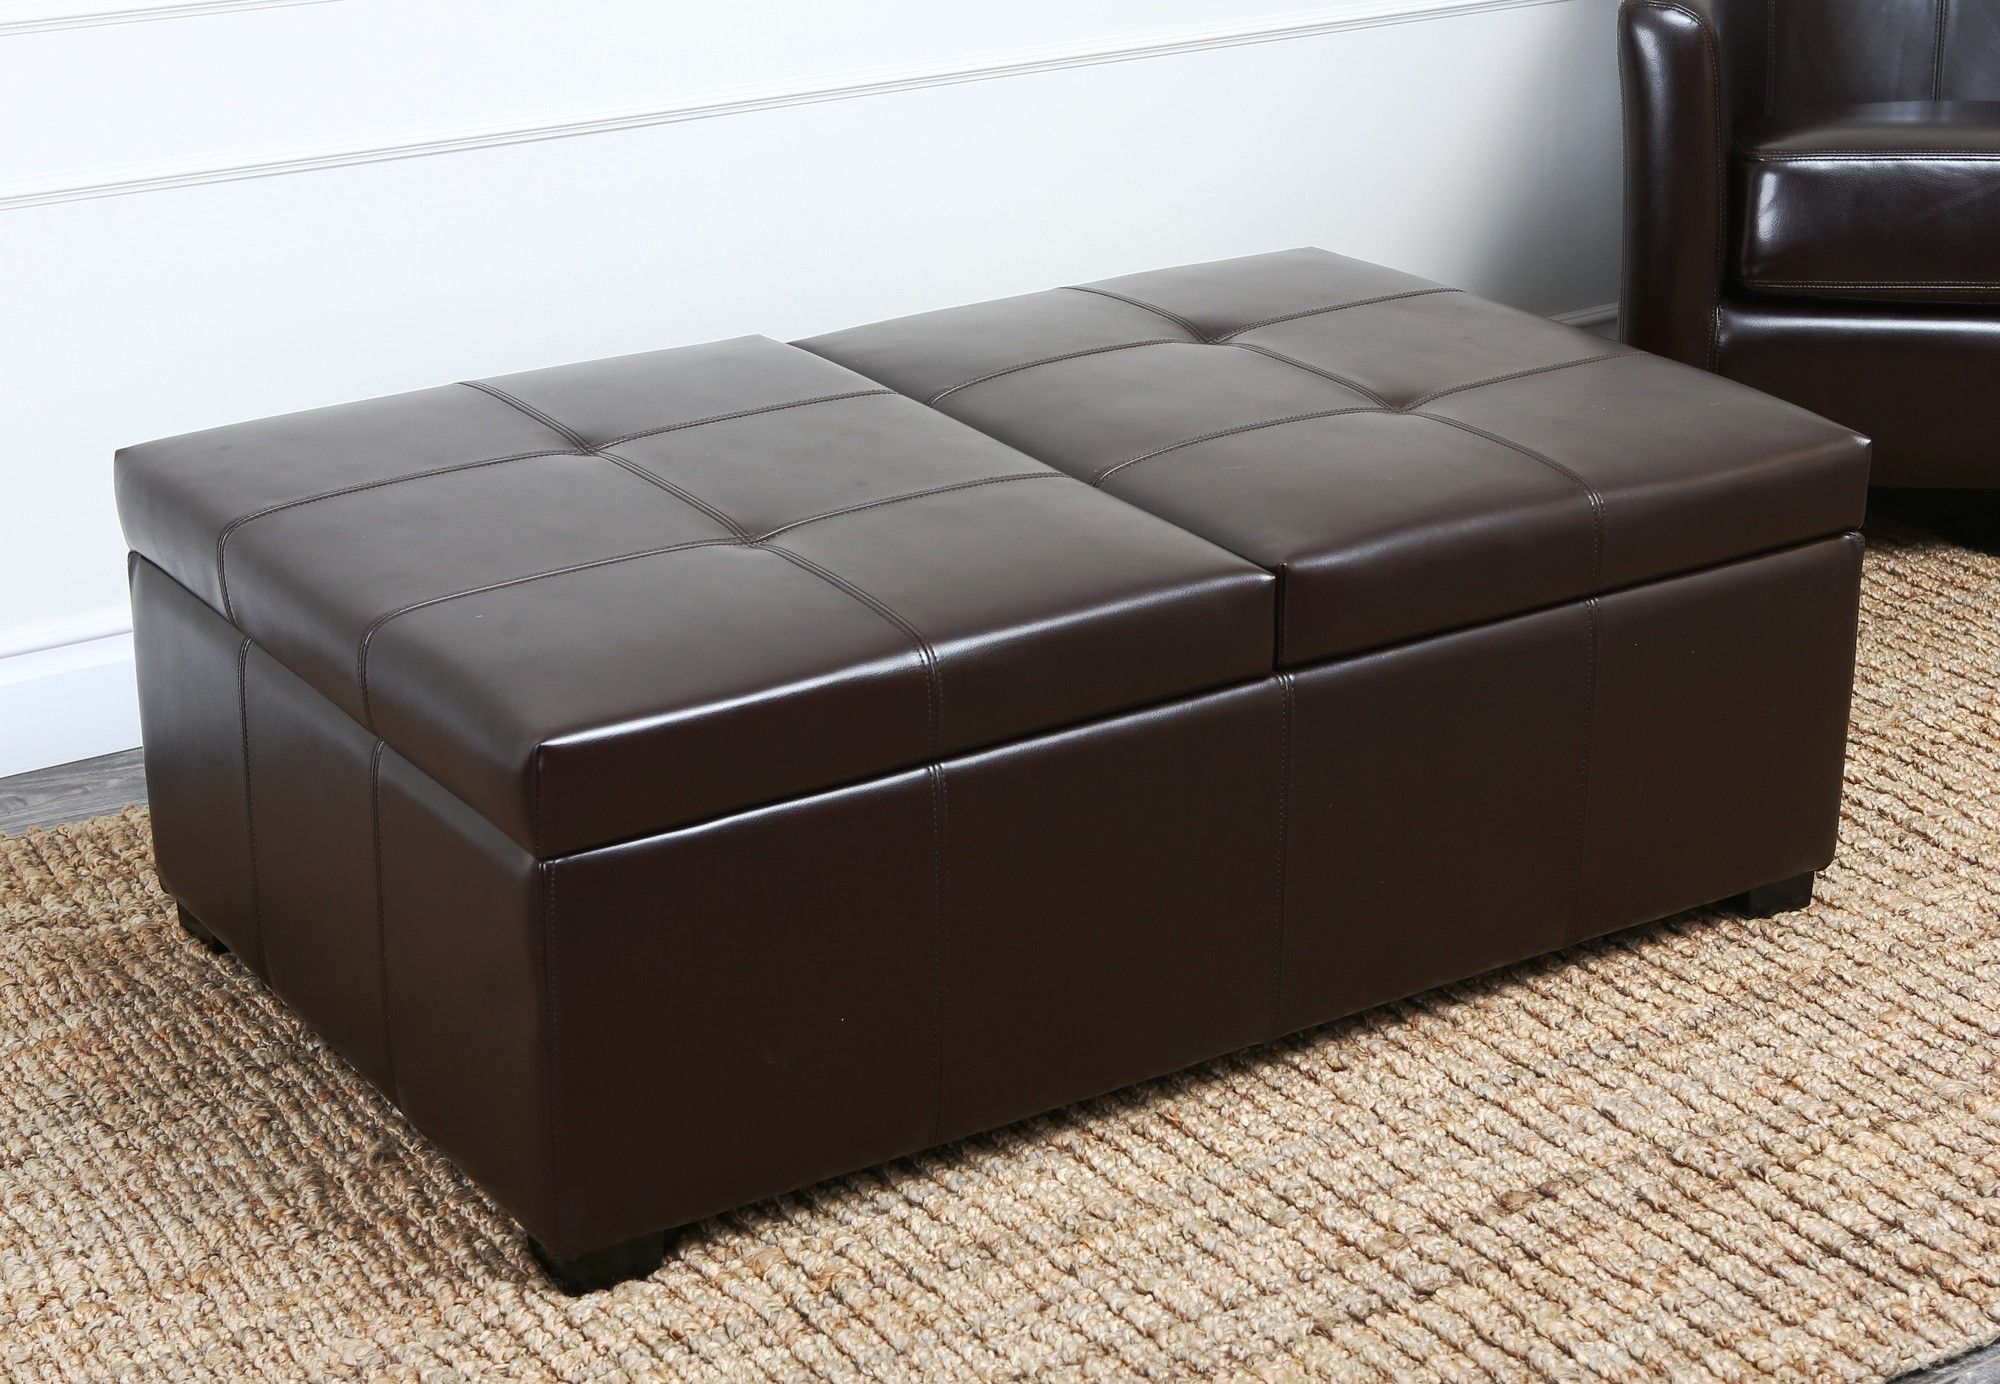 Remarkable Fordbridge Storage Ottoman Products Dark Furniture Caraccident5 Cool Chair Designs And Ideas Caraccident5Info